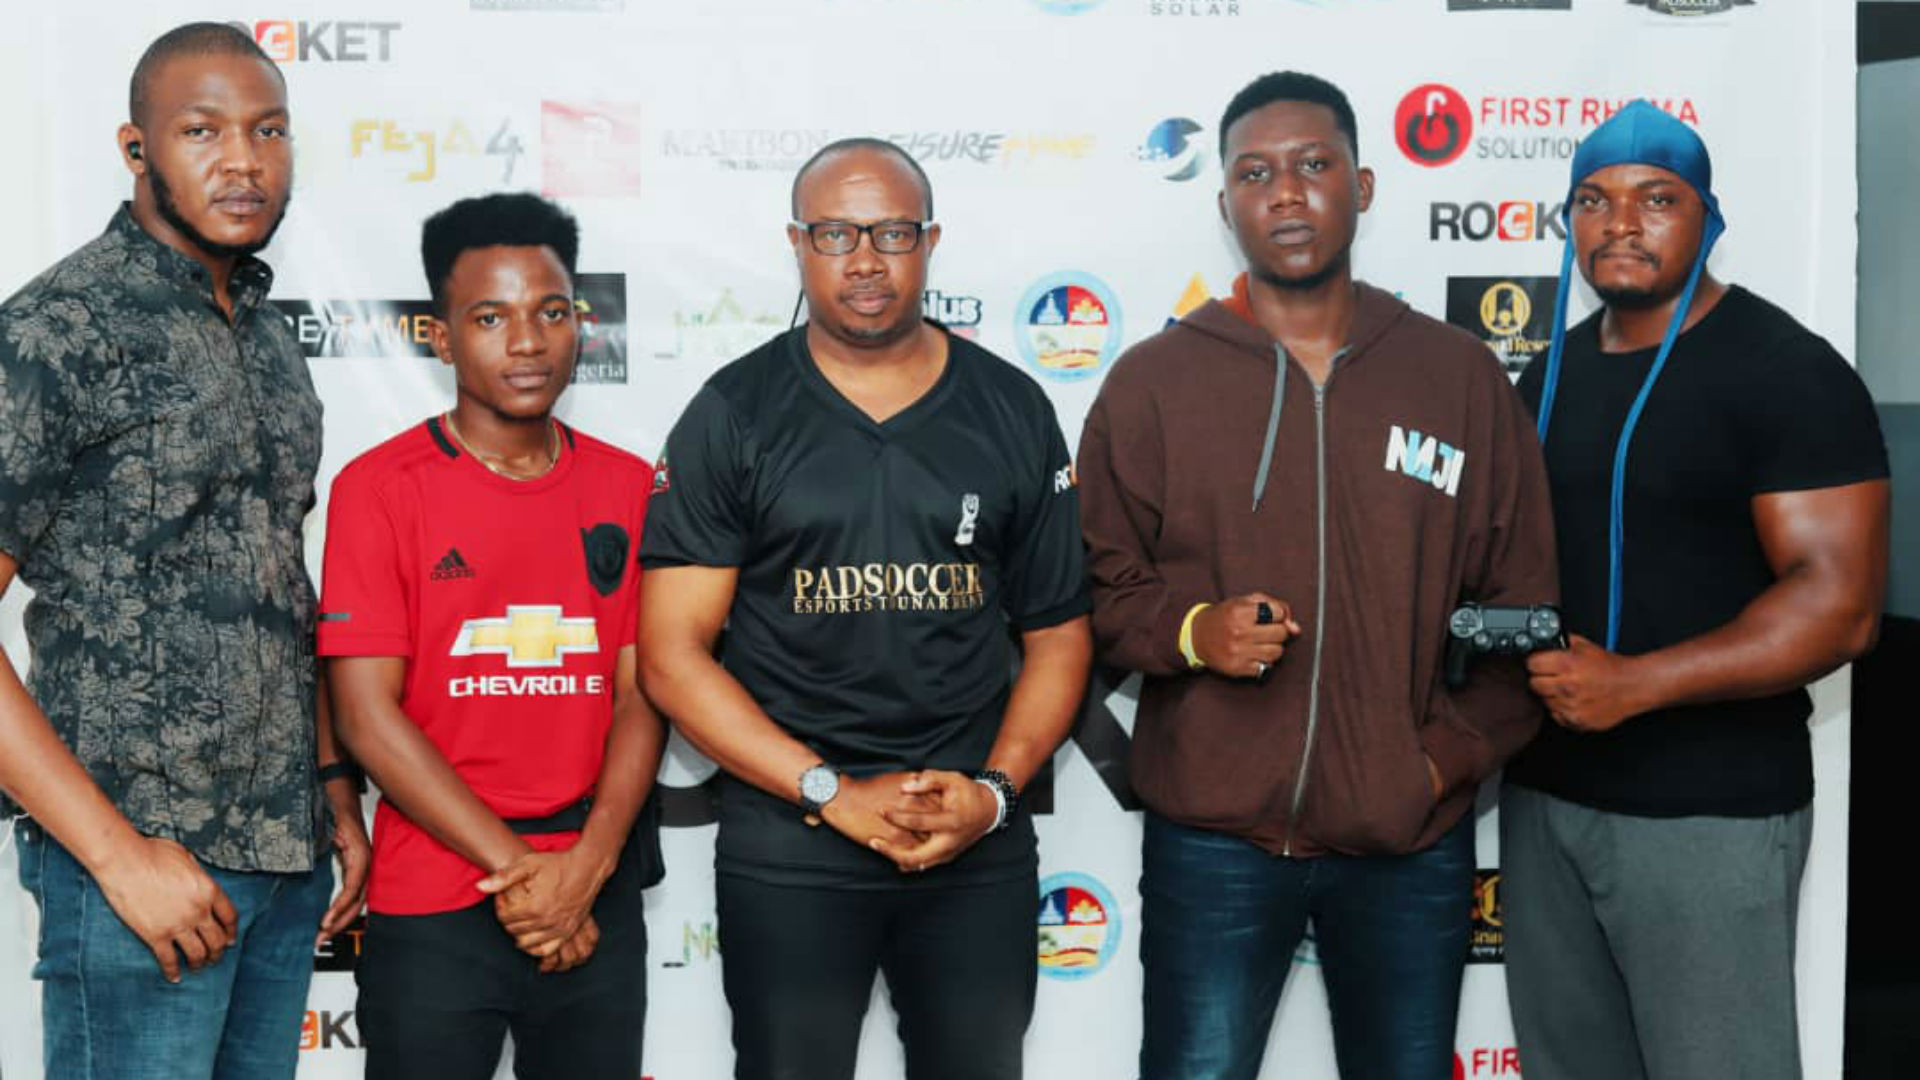 Padsoccer esports tournament dreams bigger after inspiring Lagos qualifiers